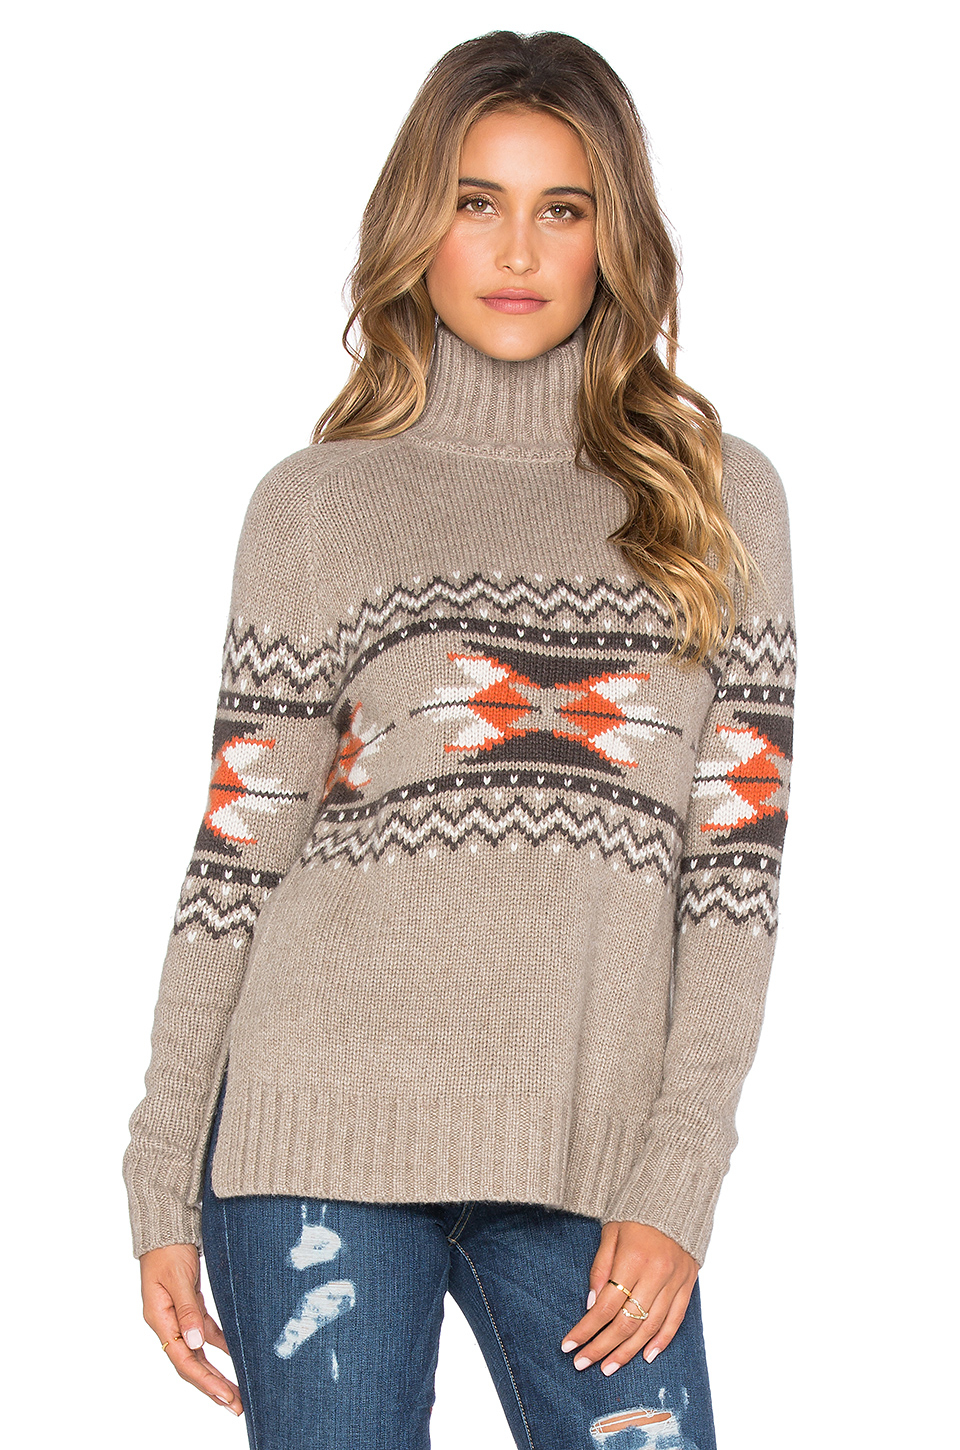 Autumn cashmere Fairisle Mockneck Sweater in Gray | Lyst